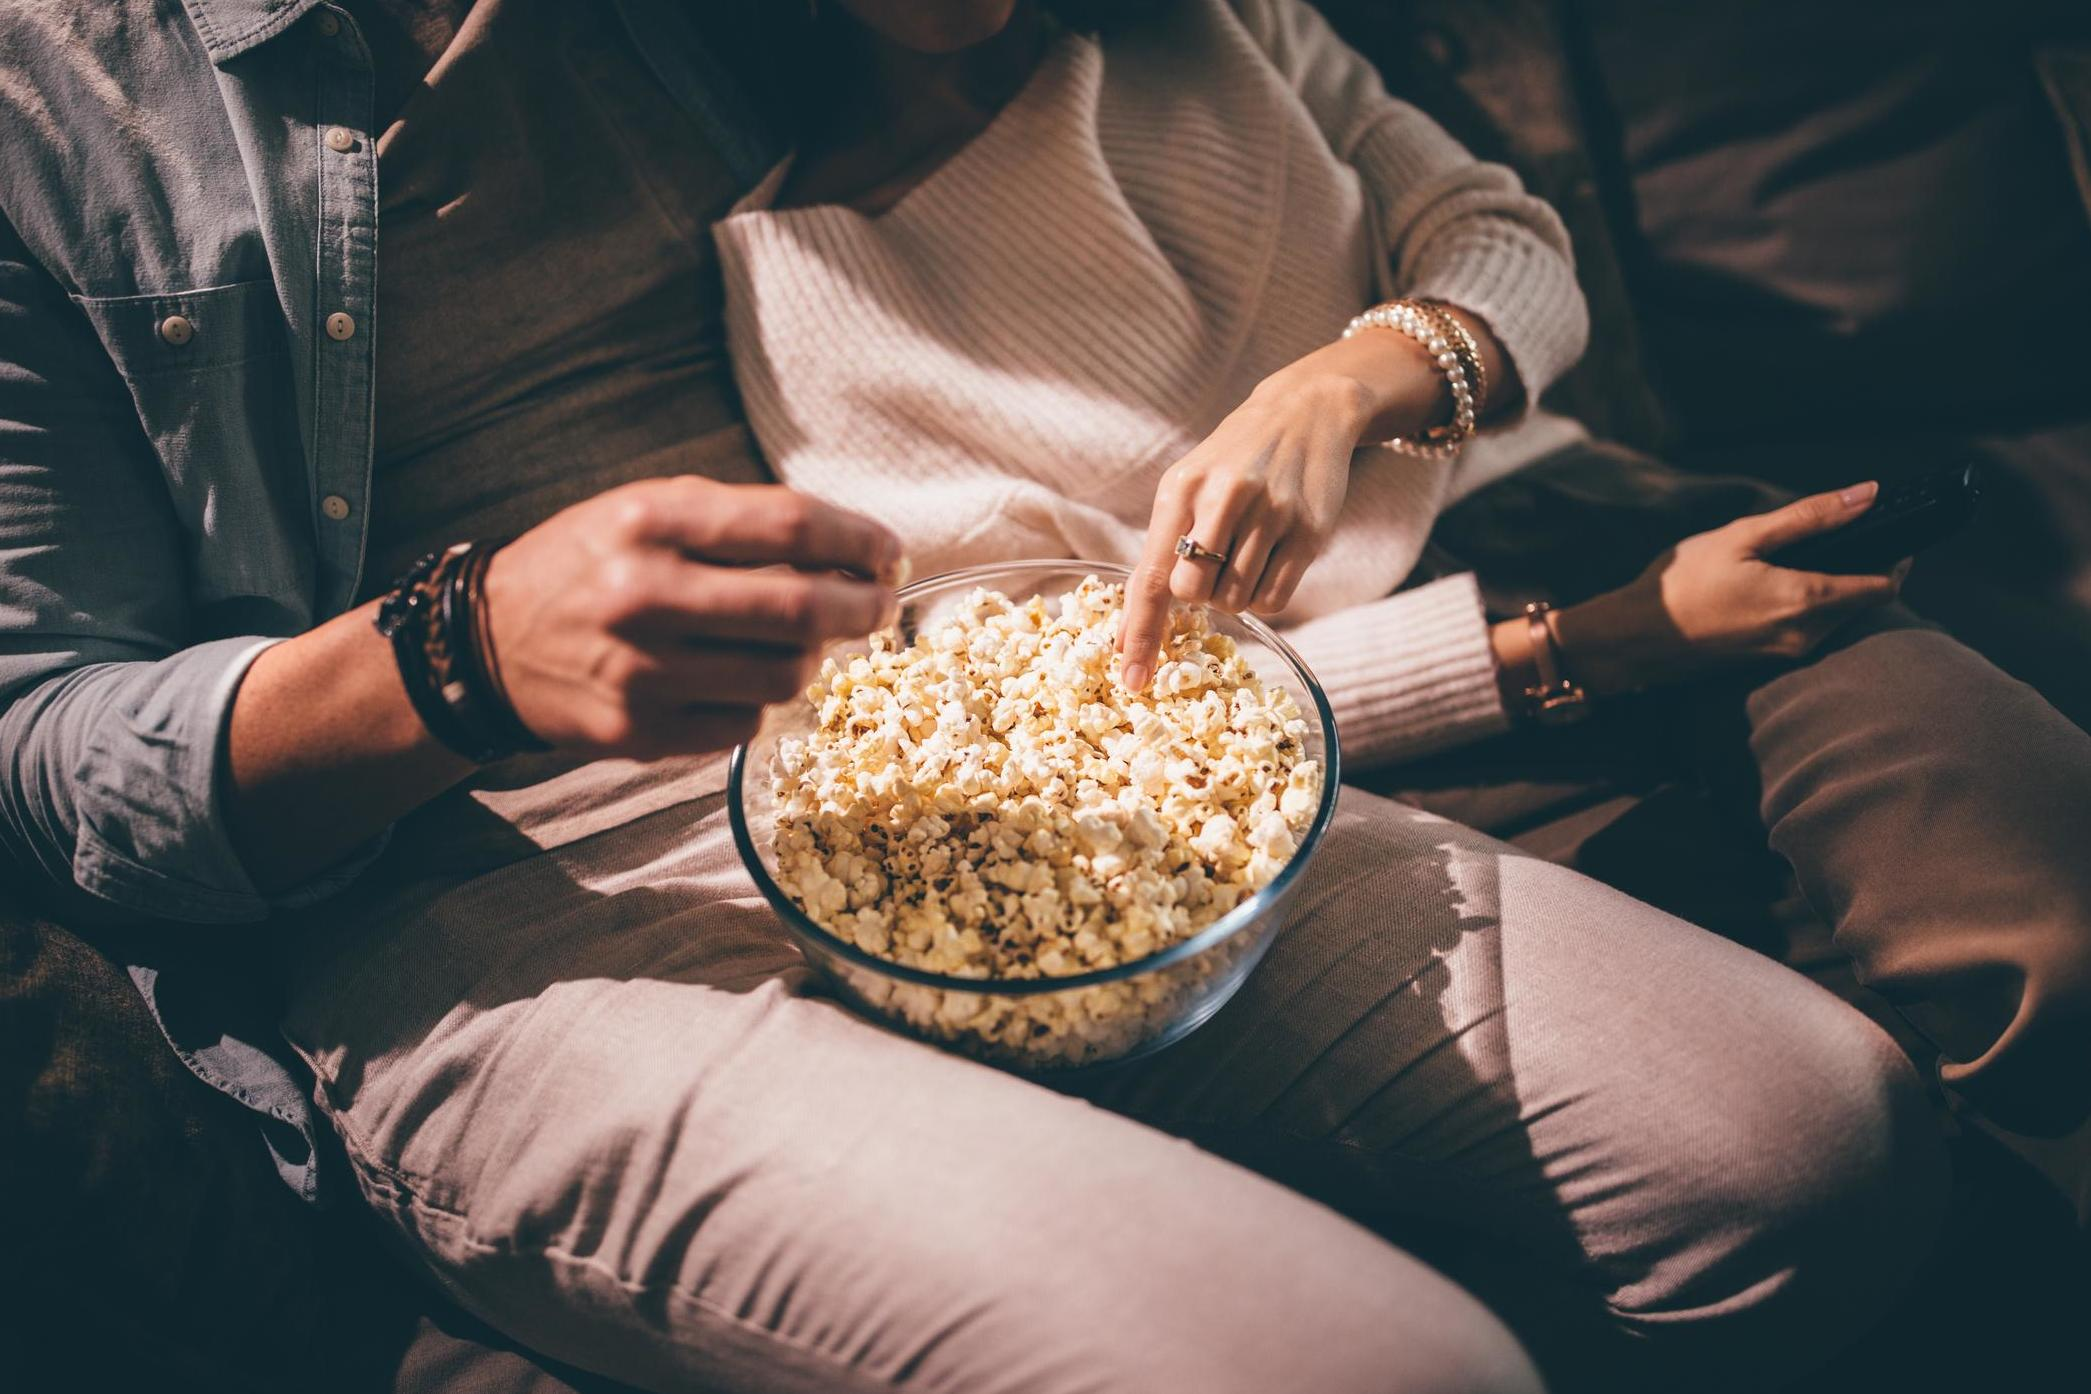 Regular cinema trips could help guard against depression in old age, study claims - The Independent